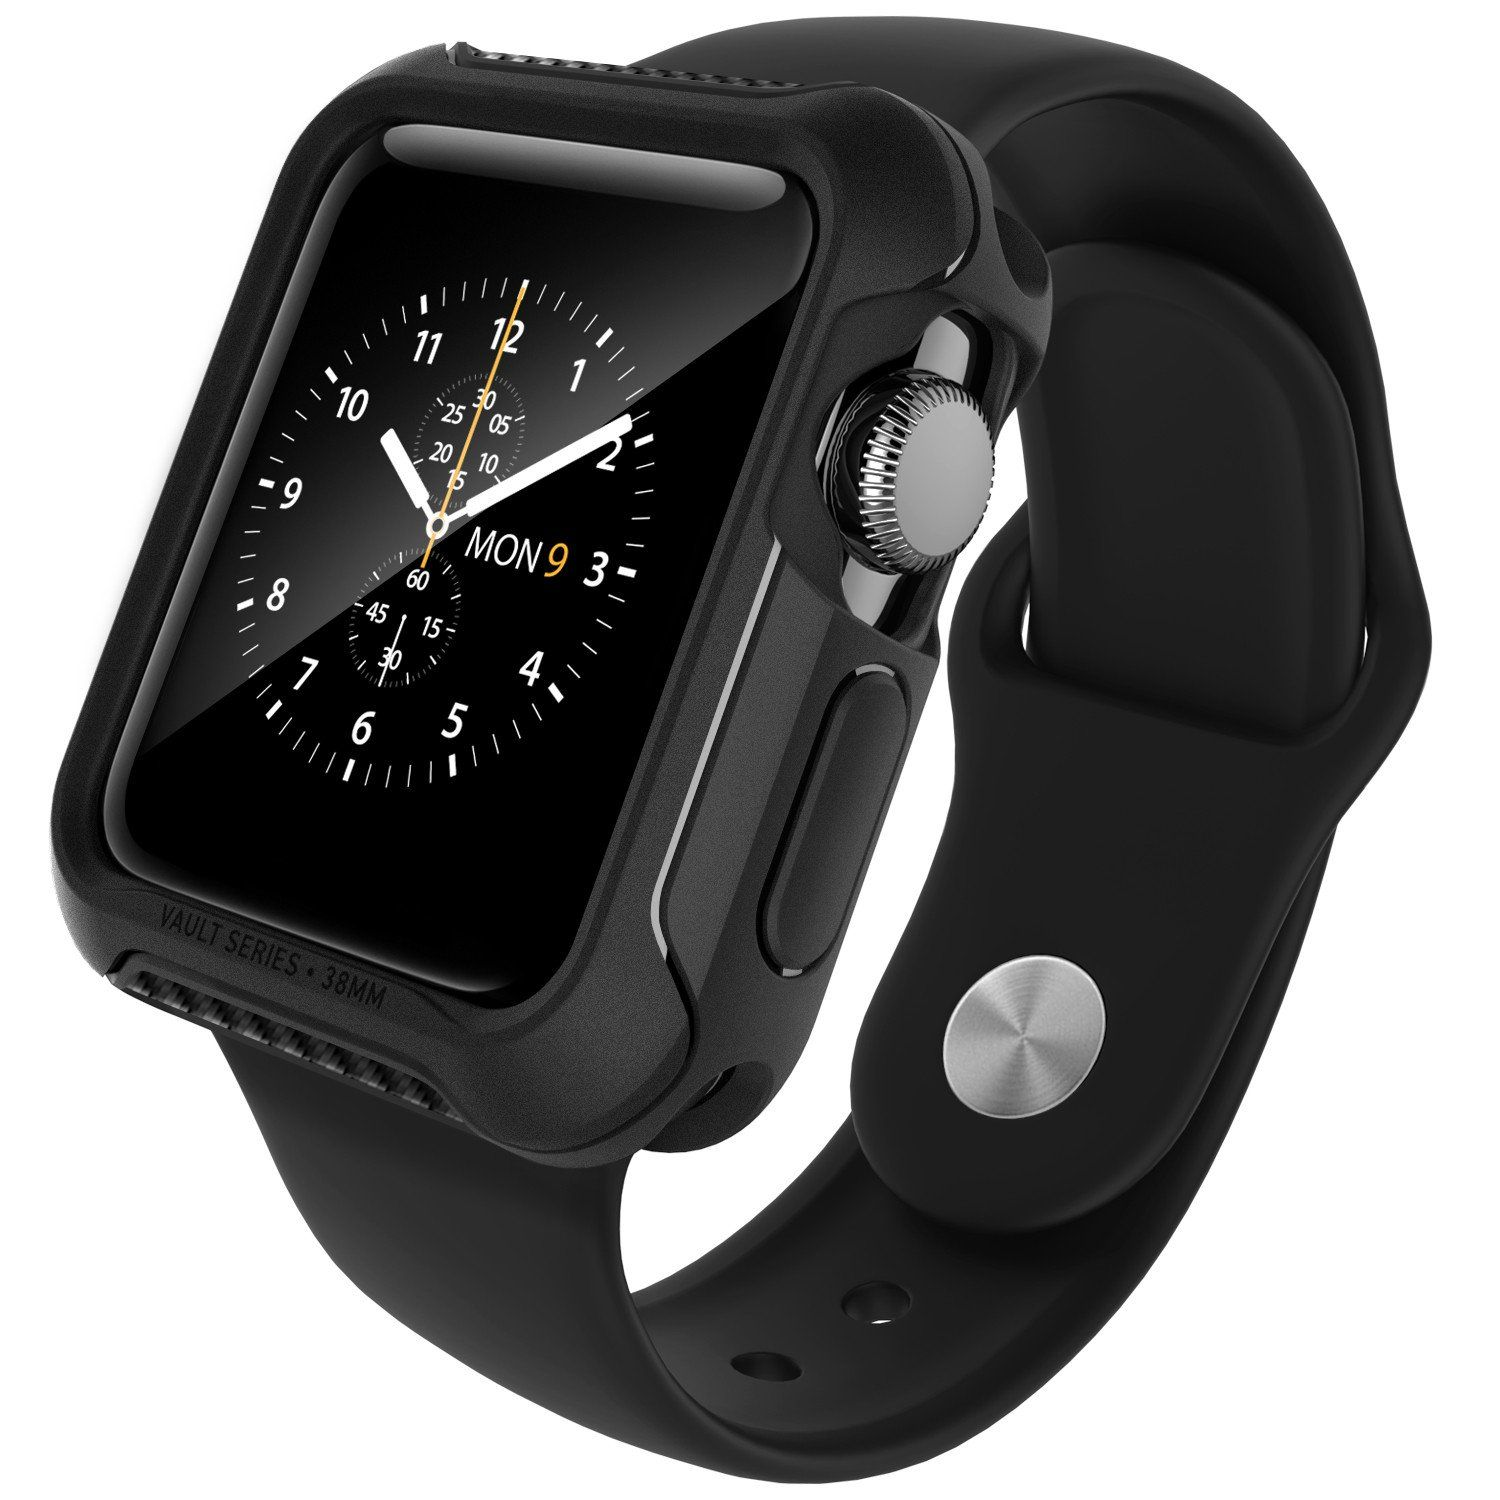 official photos 8f14c d984a 38mm - Apple Watch Series 2 Case Vault - Black | Products | Apple ...